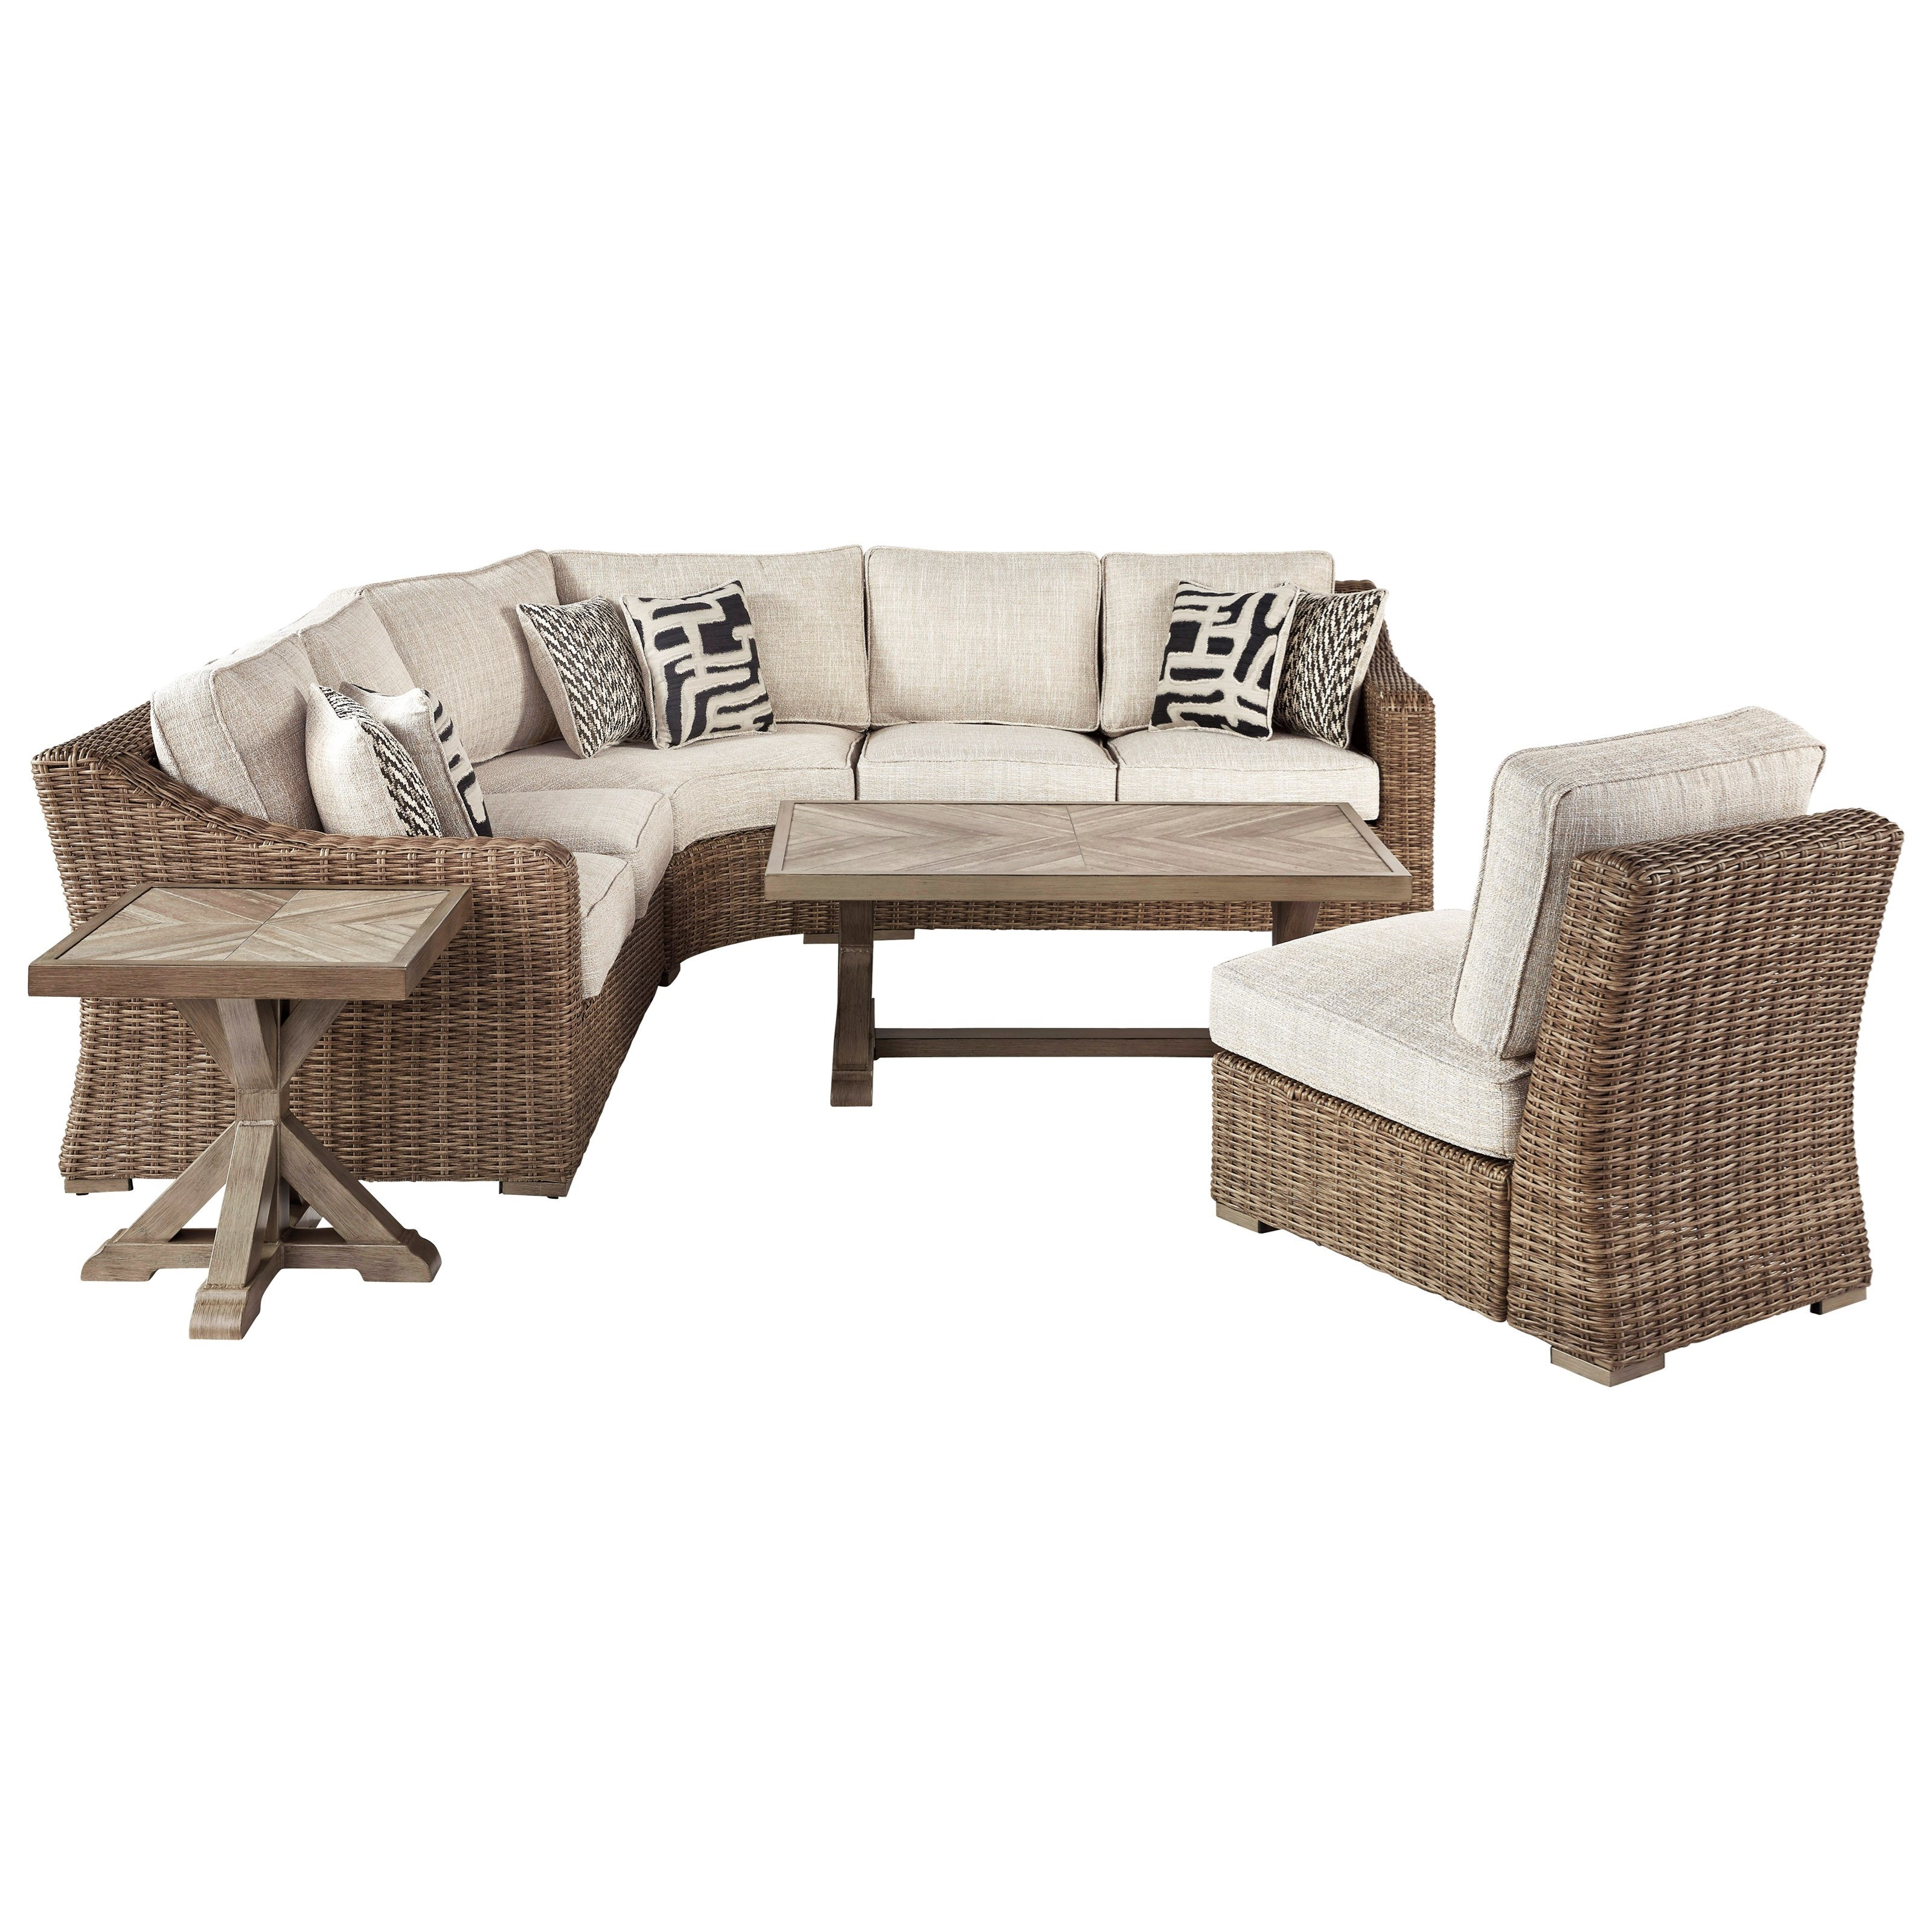 Beachcroft Outdoor Conversation Set by Signature Design at Fisher Home Furnishings